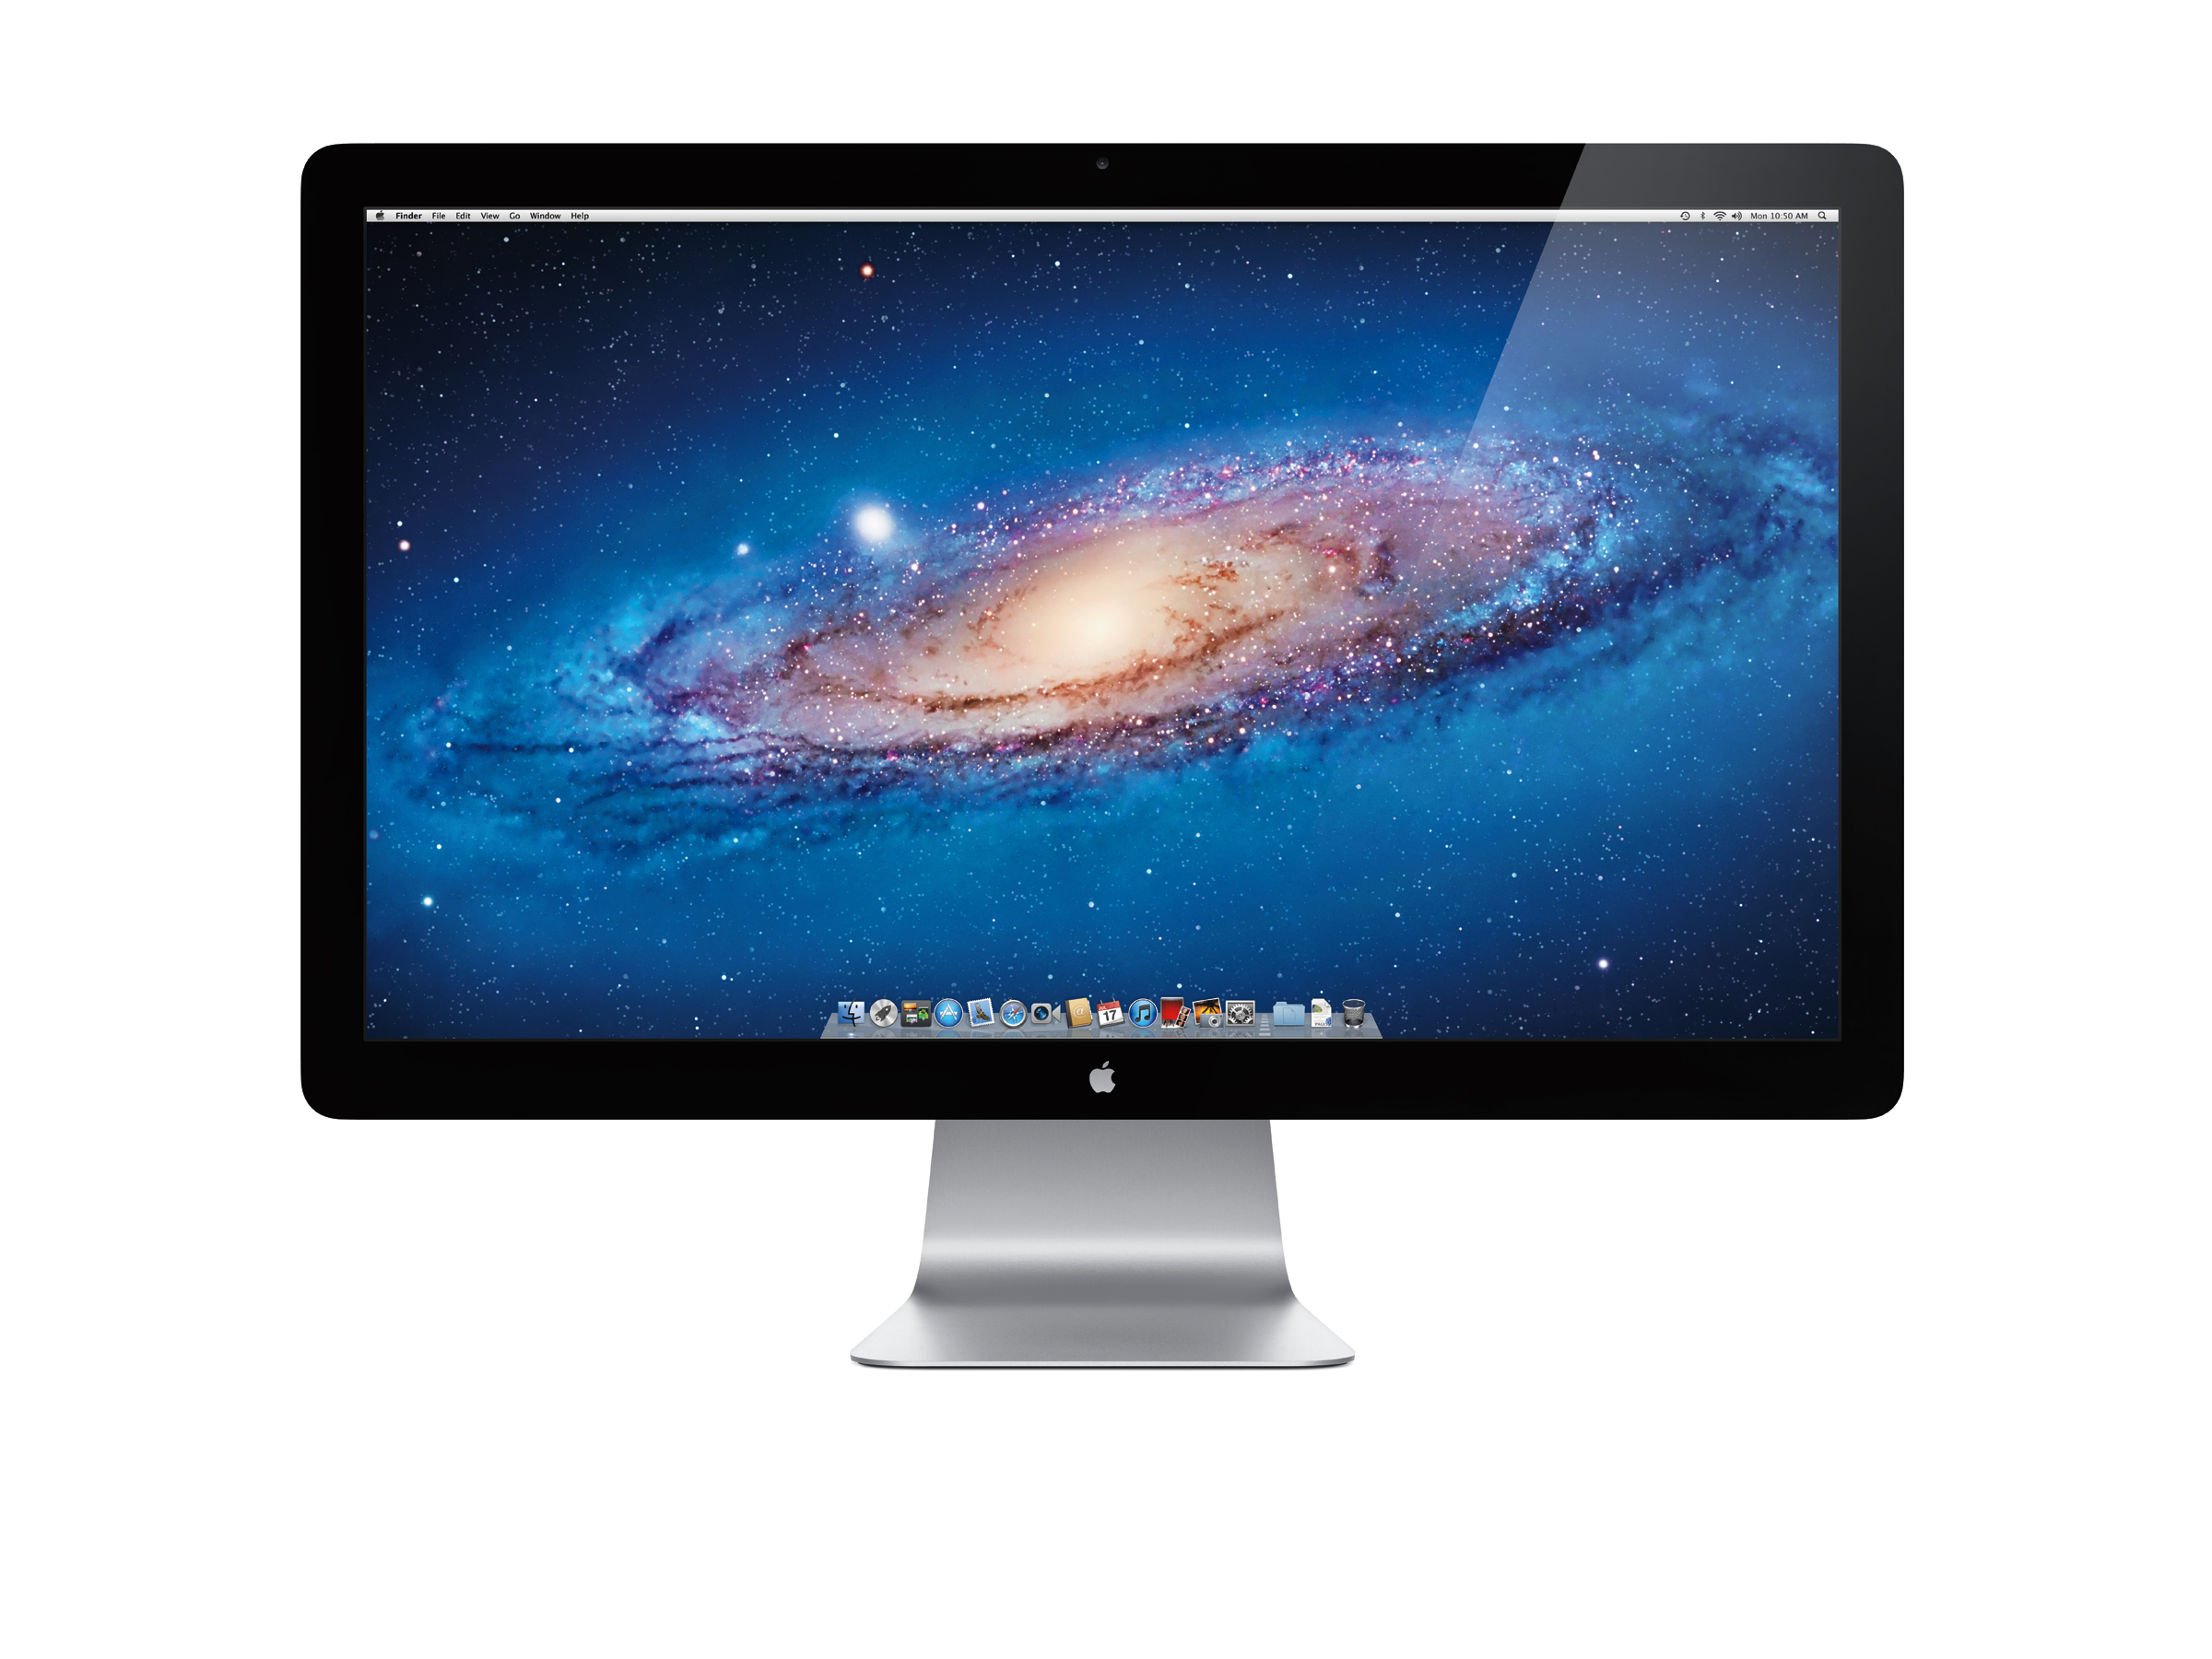 Apple's Thunderbolt Display has been discontinued, Apple said on June 24.